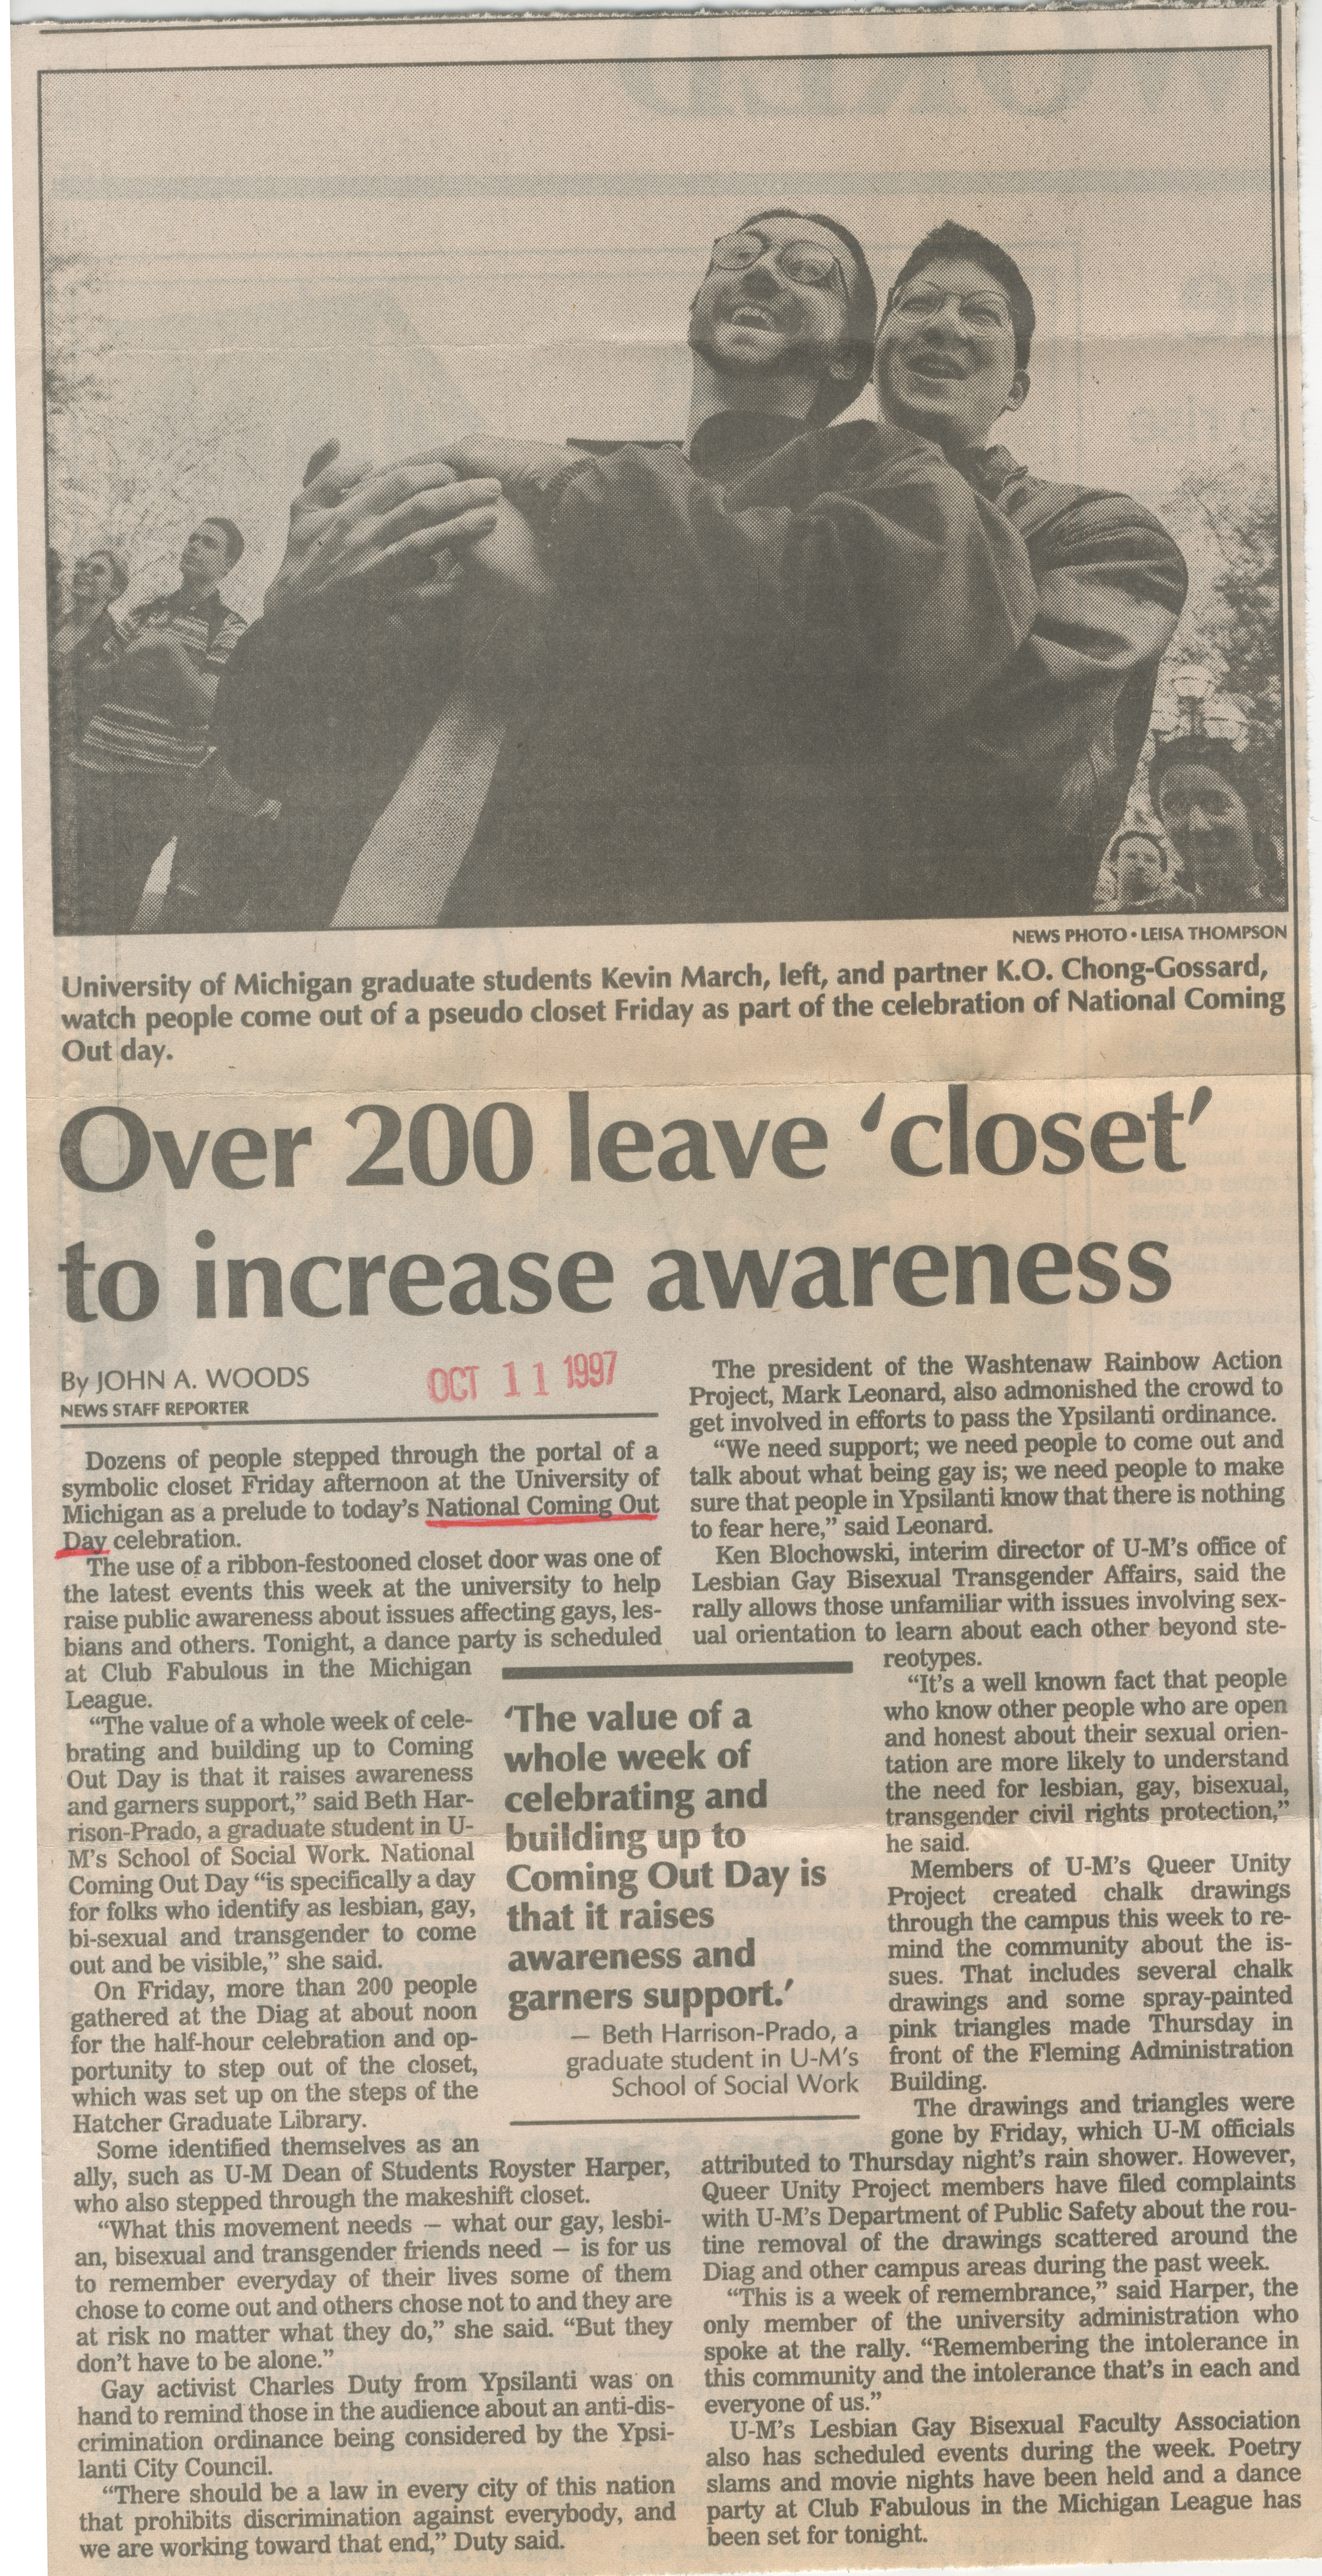 "Over 200 Leave 'Closet"" To Increase Awareness image"